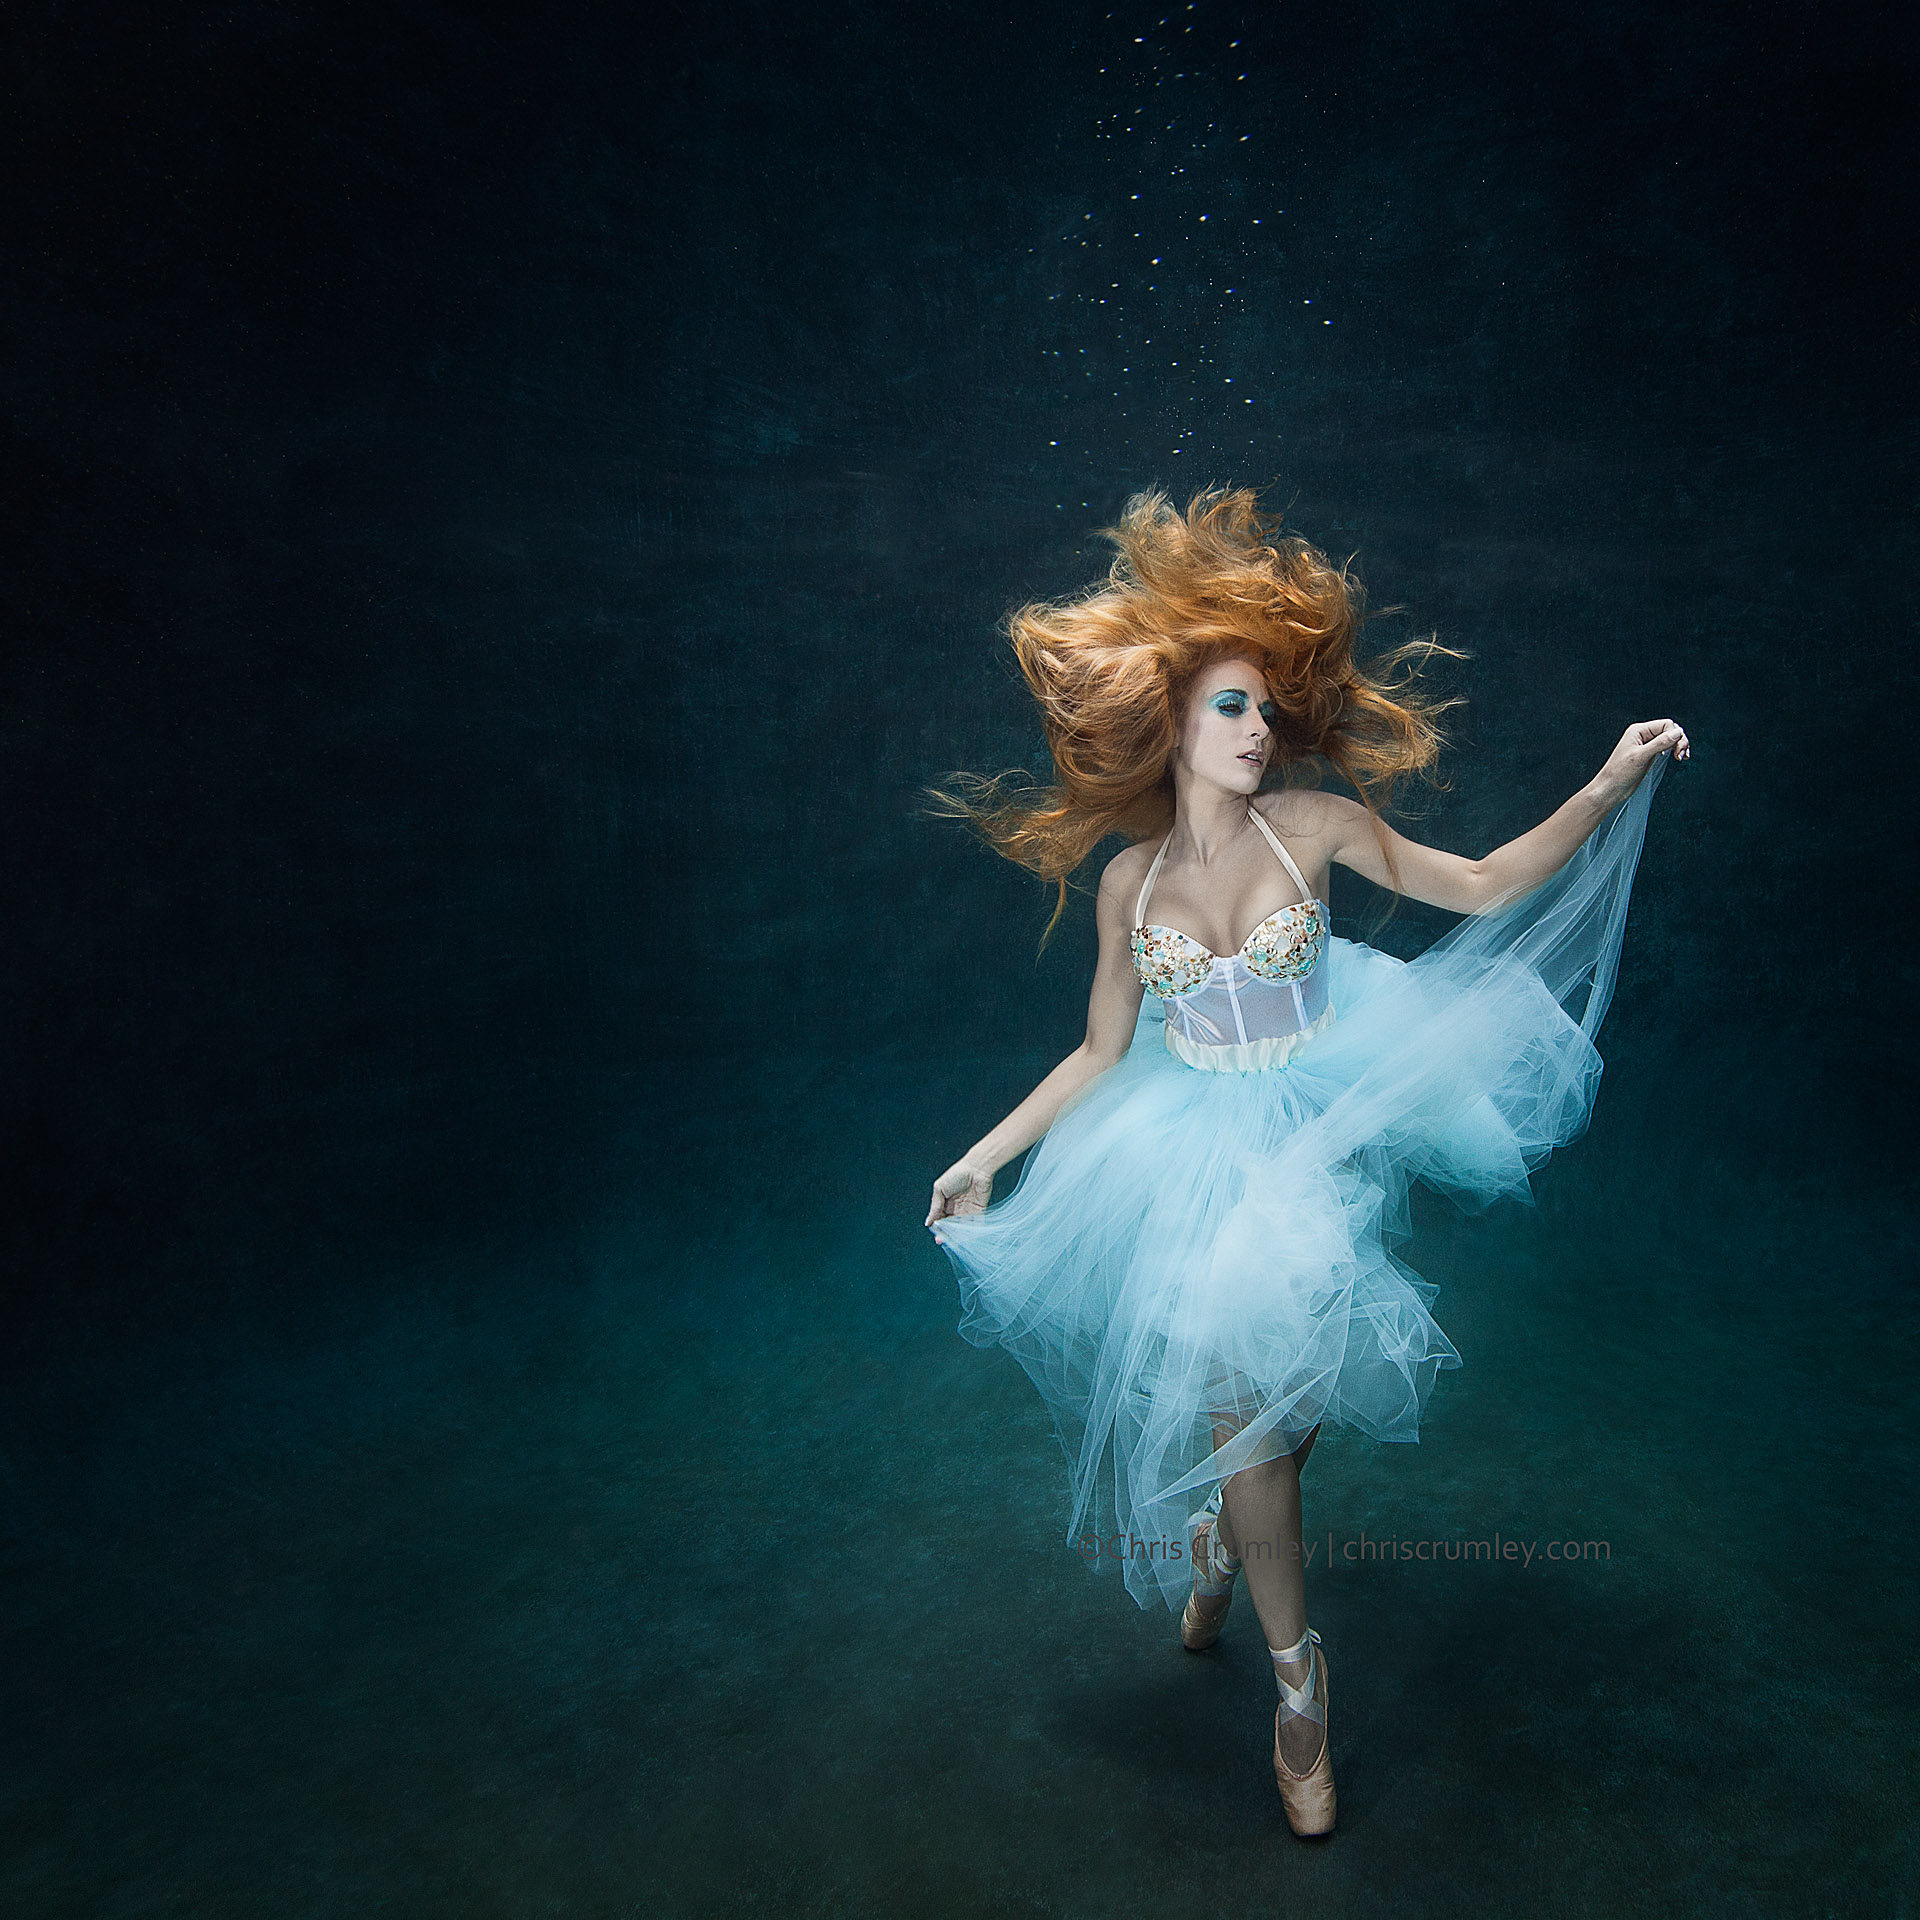 Underwater Dance; Virginia Beach, Virginia